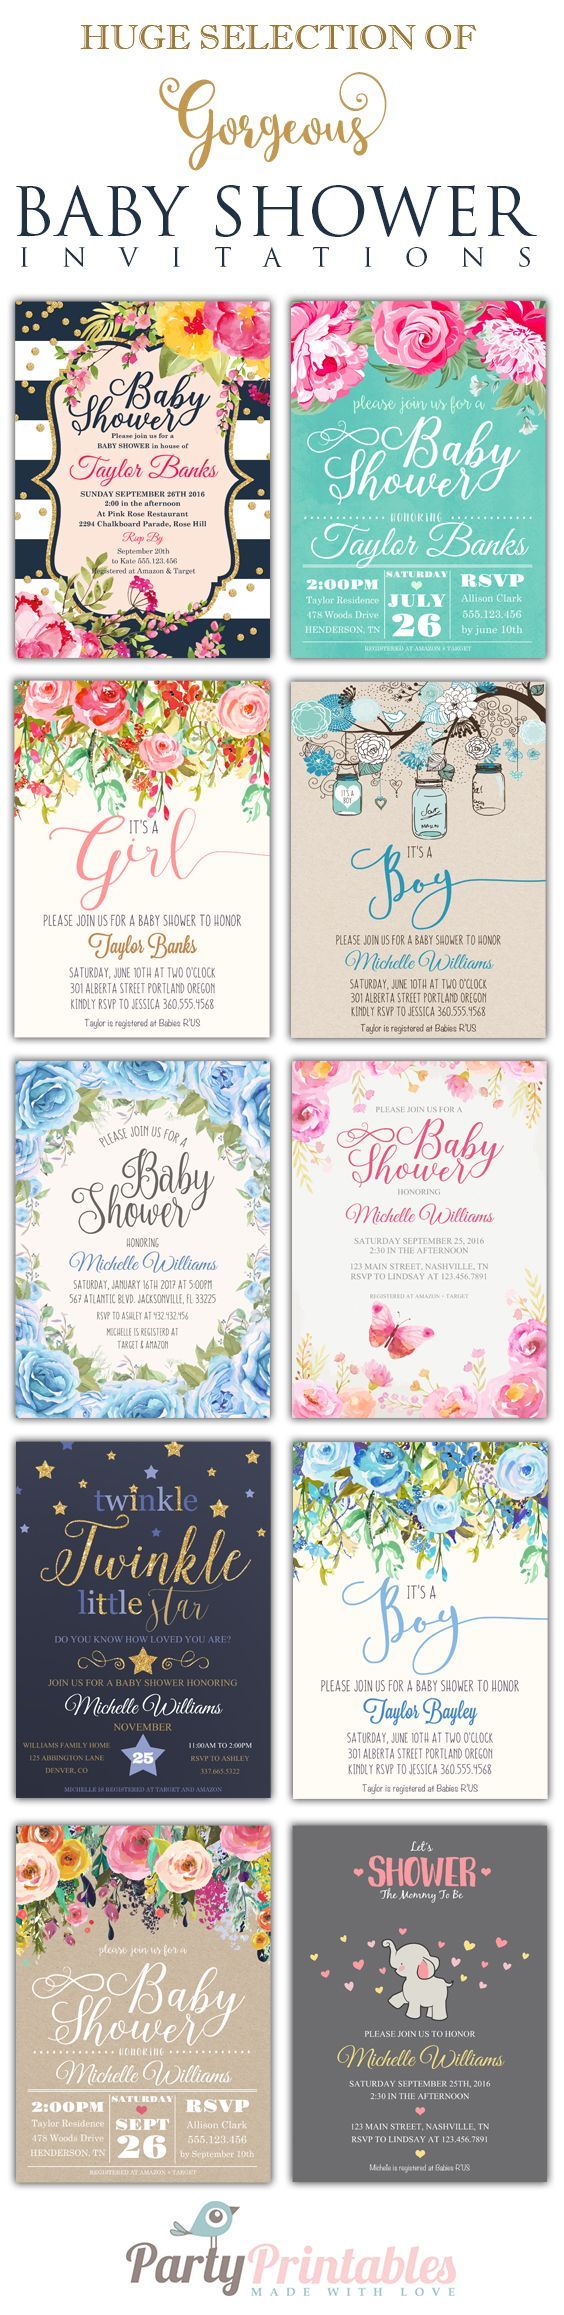 Easy to Personalize with Adobe Reader. A huge selection of original trend-setting baby shower invitations for a girl baby shower or boy baby shower or twin baby shower in styles ranging from modern to classic to elegant, glam, rustic and even boho chic. In any color and just about any fonts you can imagine. Wow your guests with beautiful invitations. Celebrate Life, Love & Babies with Party-Printables.com at www.party-printables.com